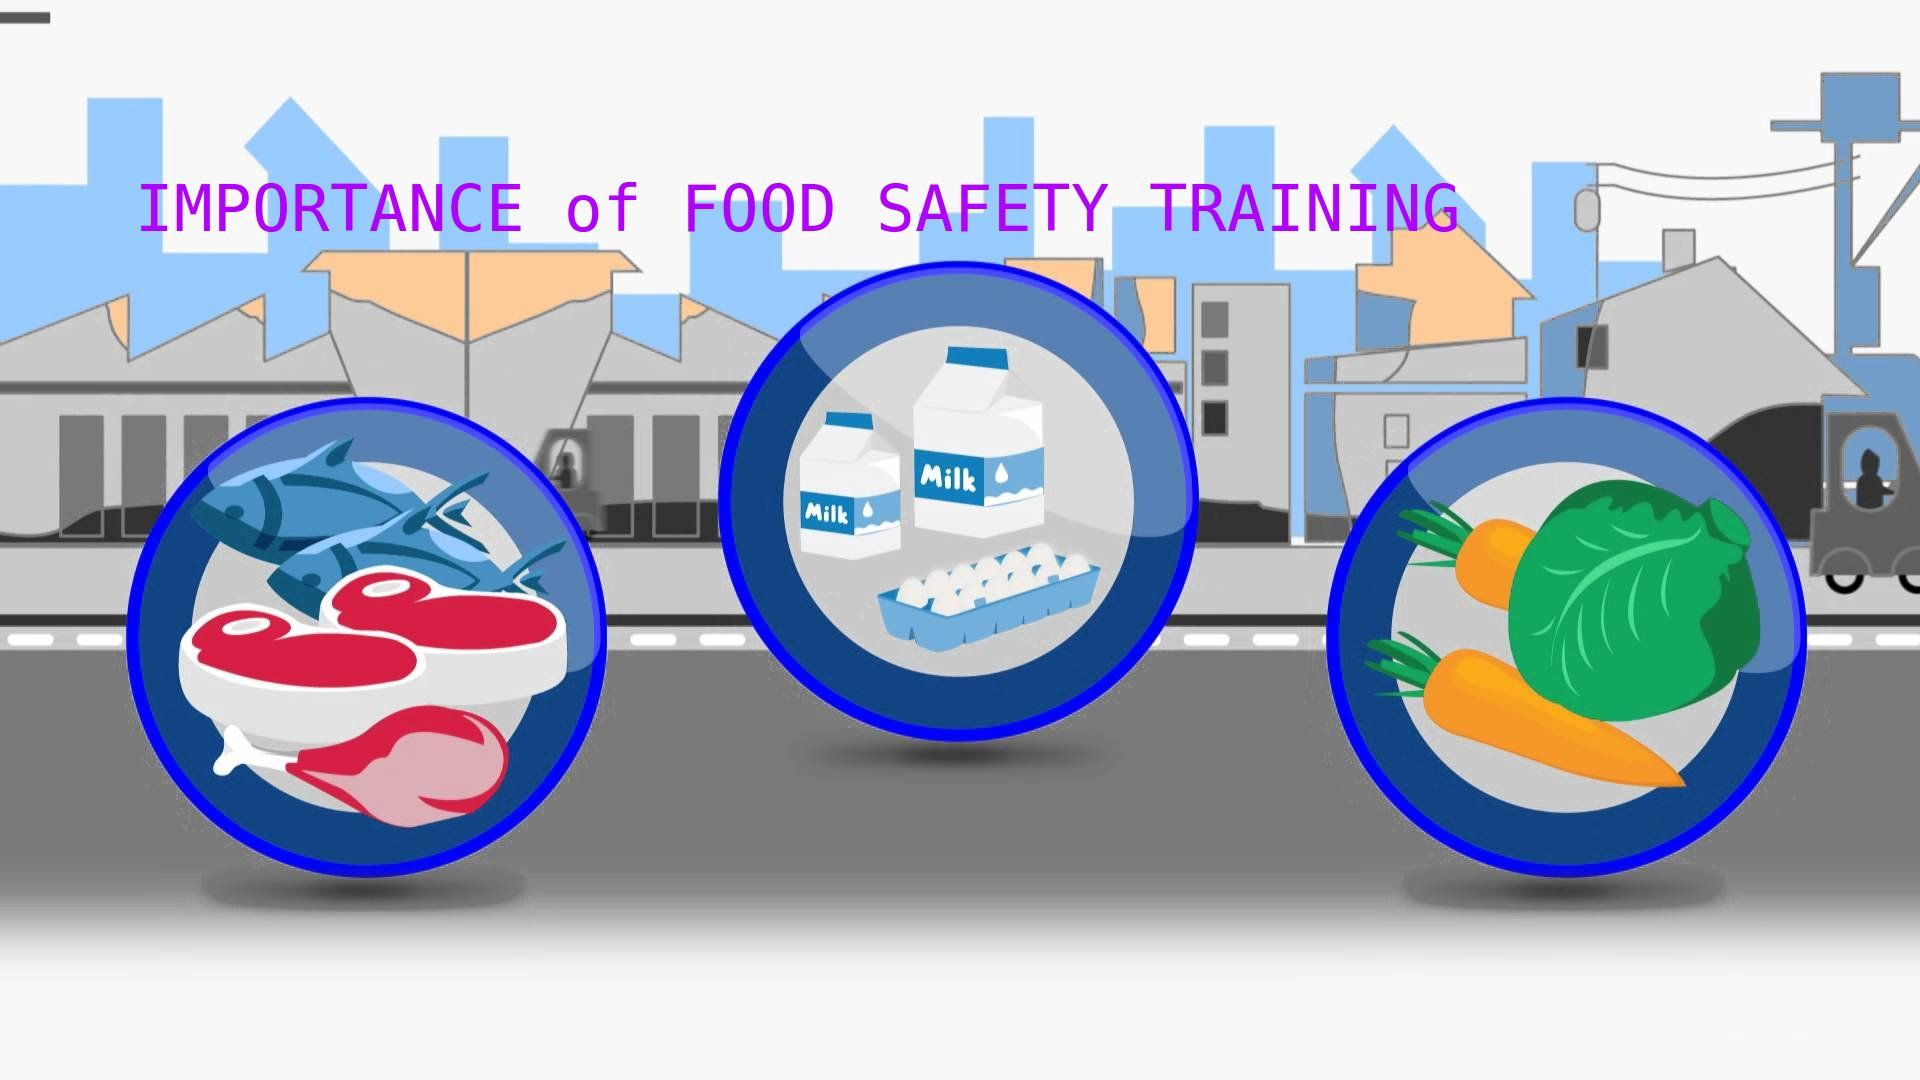 Importance of Food Safety Training 1. Reduce the risk of